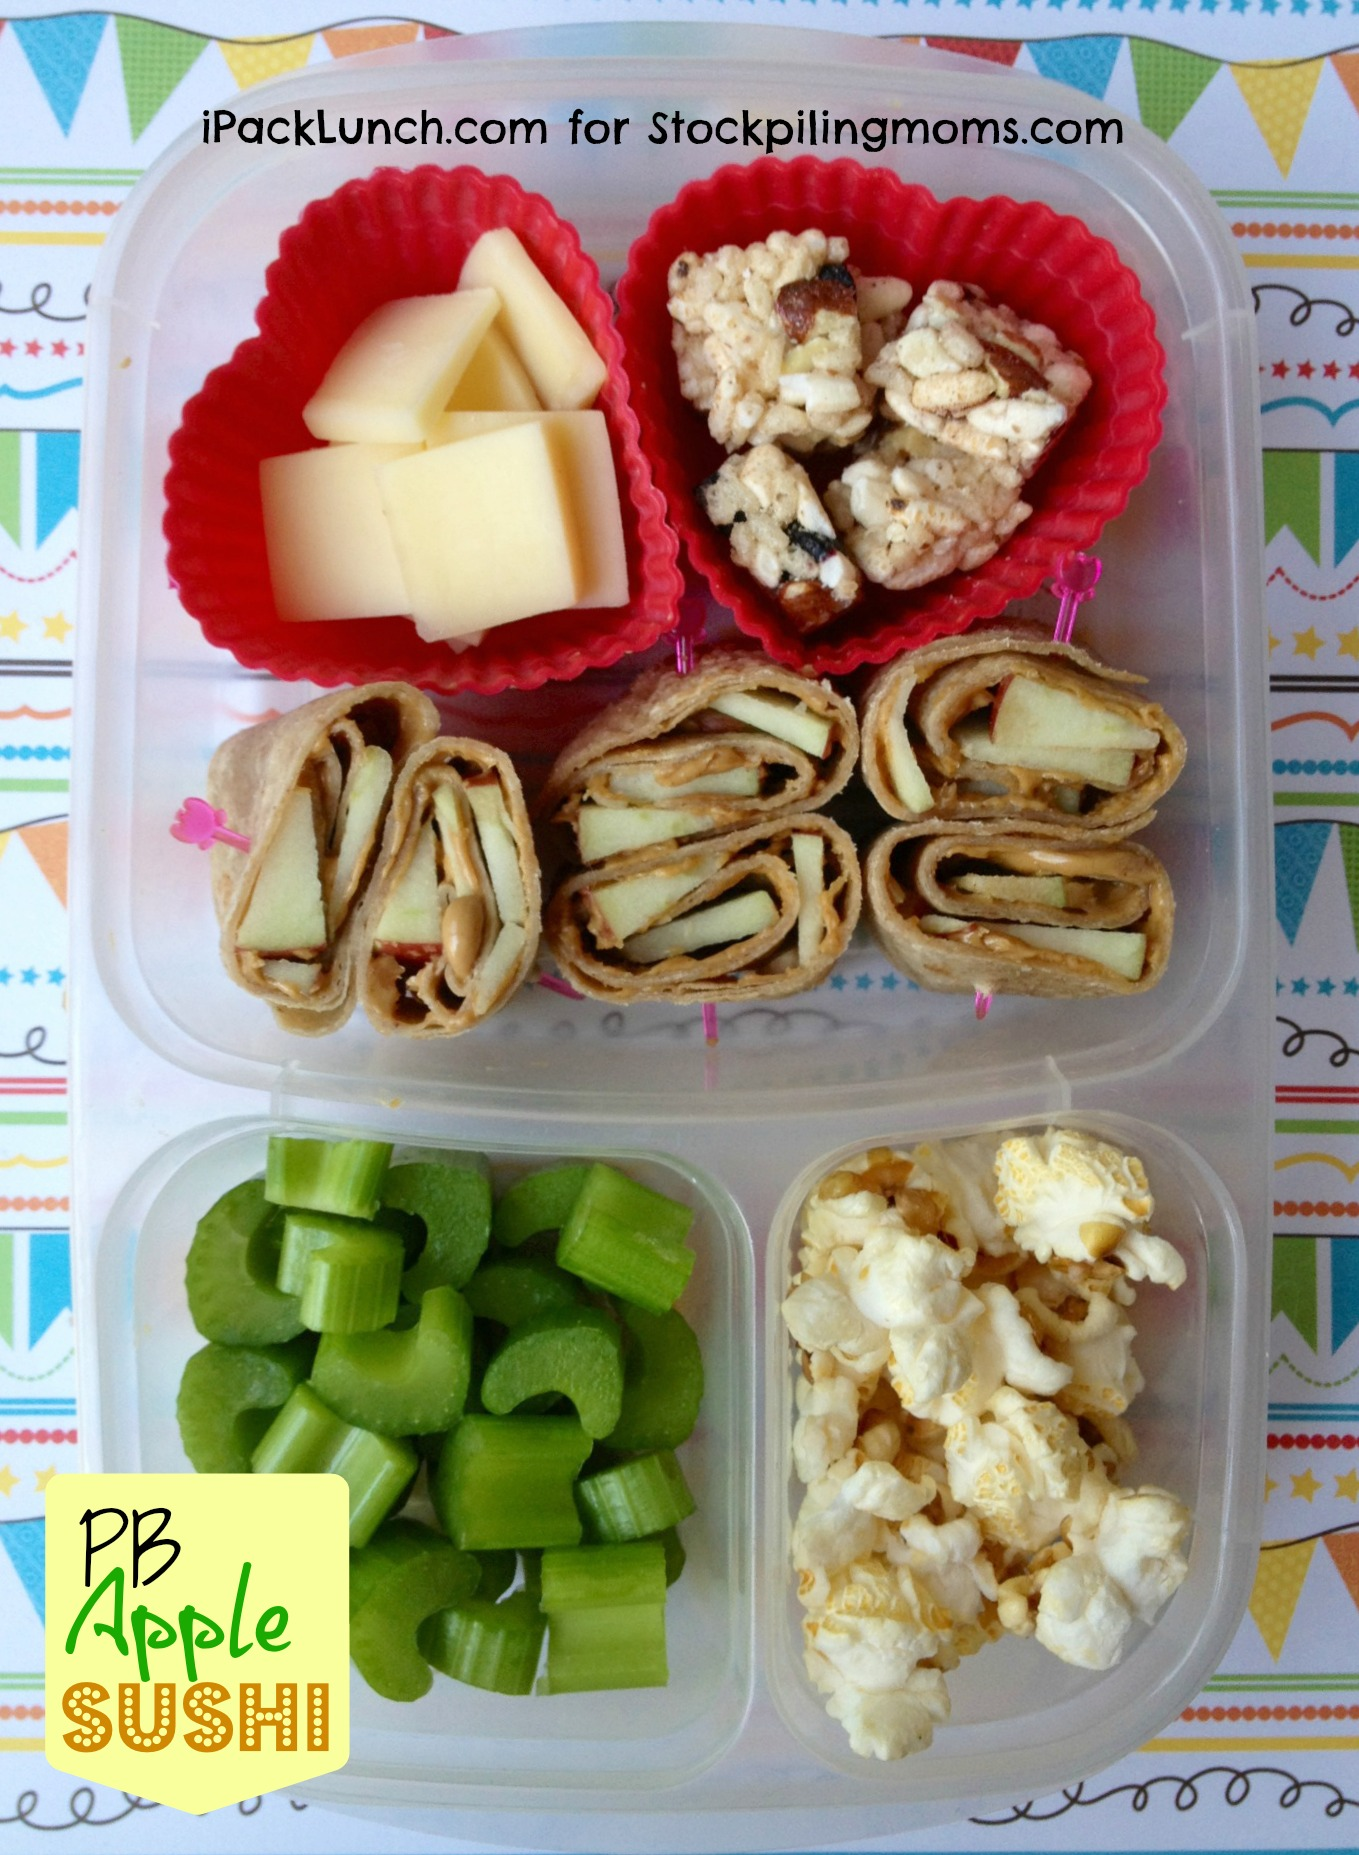 3 for 3 Lunch Challenge - Lunch Box ideas using Peanut Butter, Apples and Celery